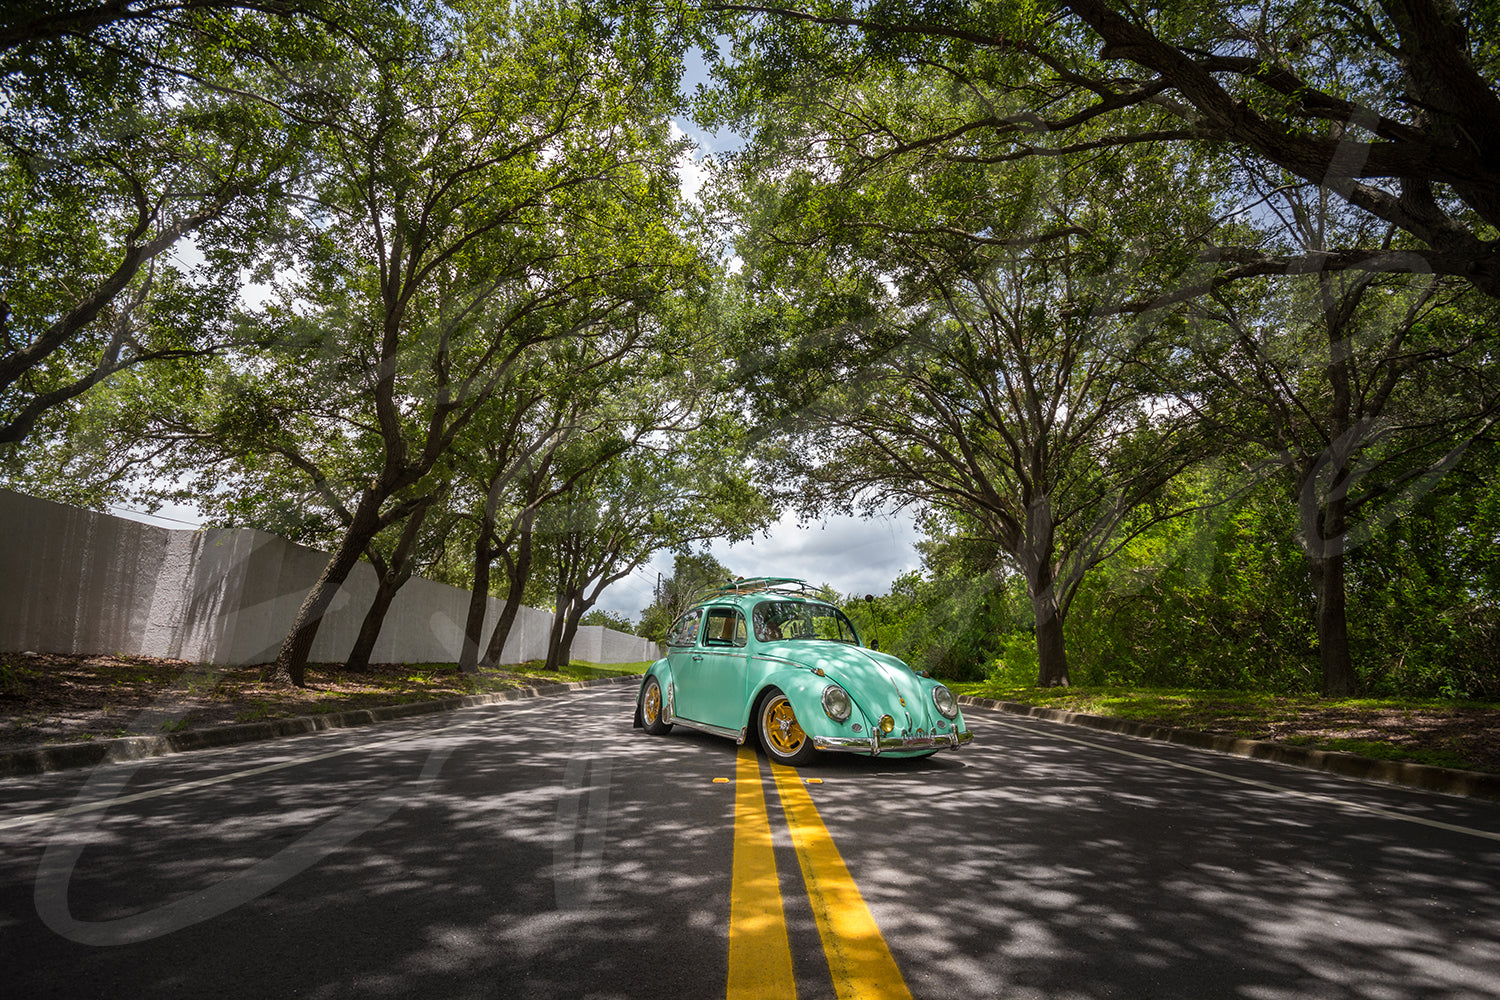 Fresh Mint Volkswagen beetle - Original Print